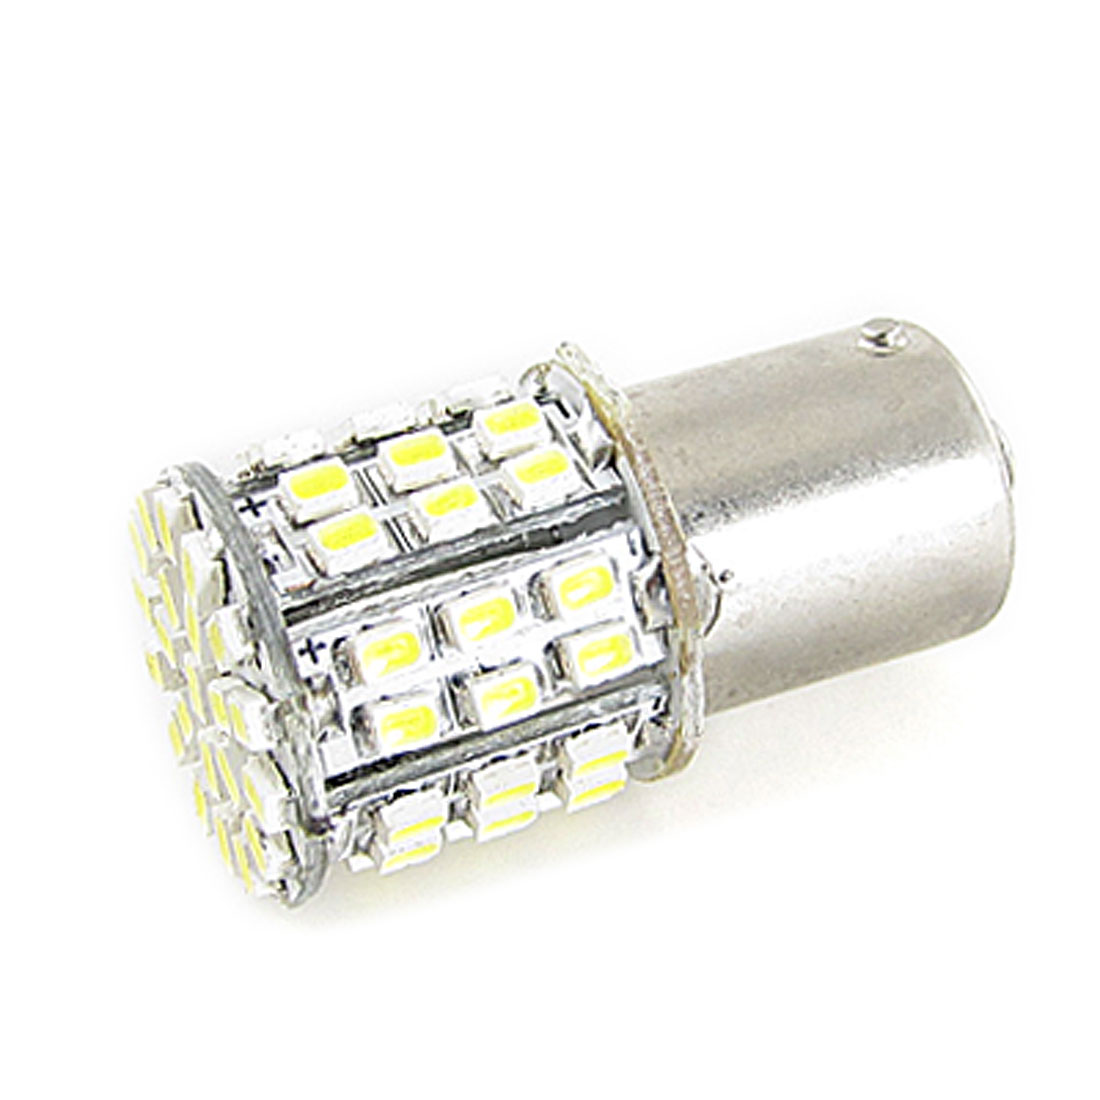 Car Vehicle BA15S 1156 White 64 SMD LED Turn Signal Light Lamp Bulb